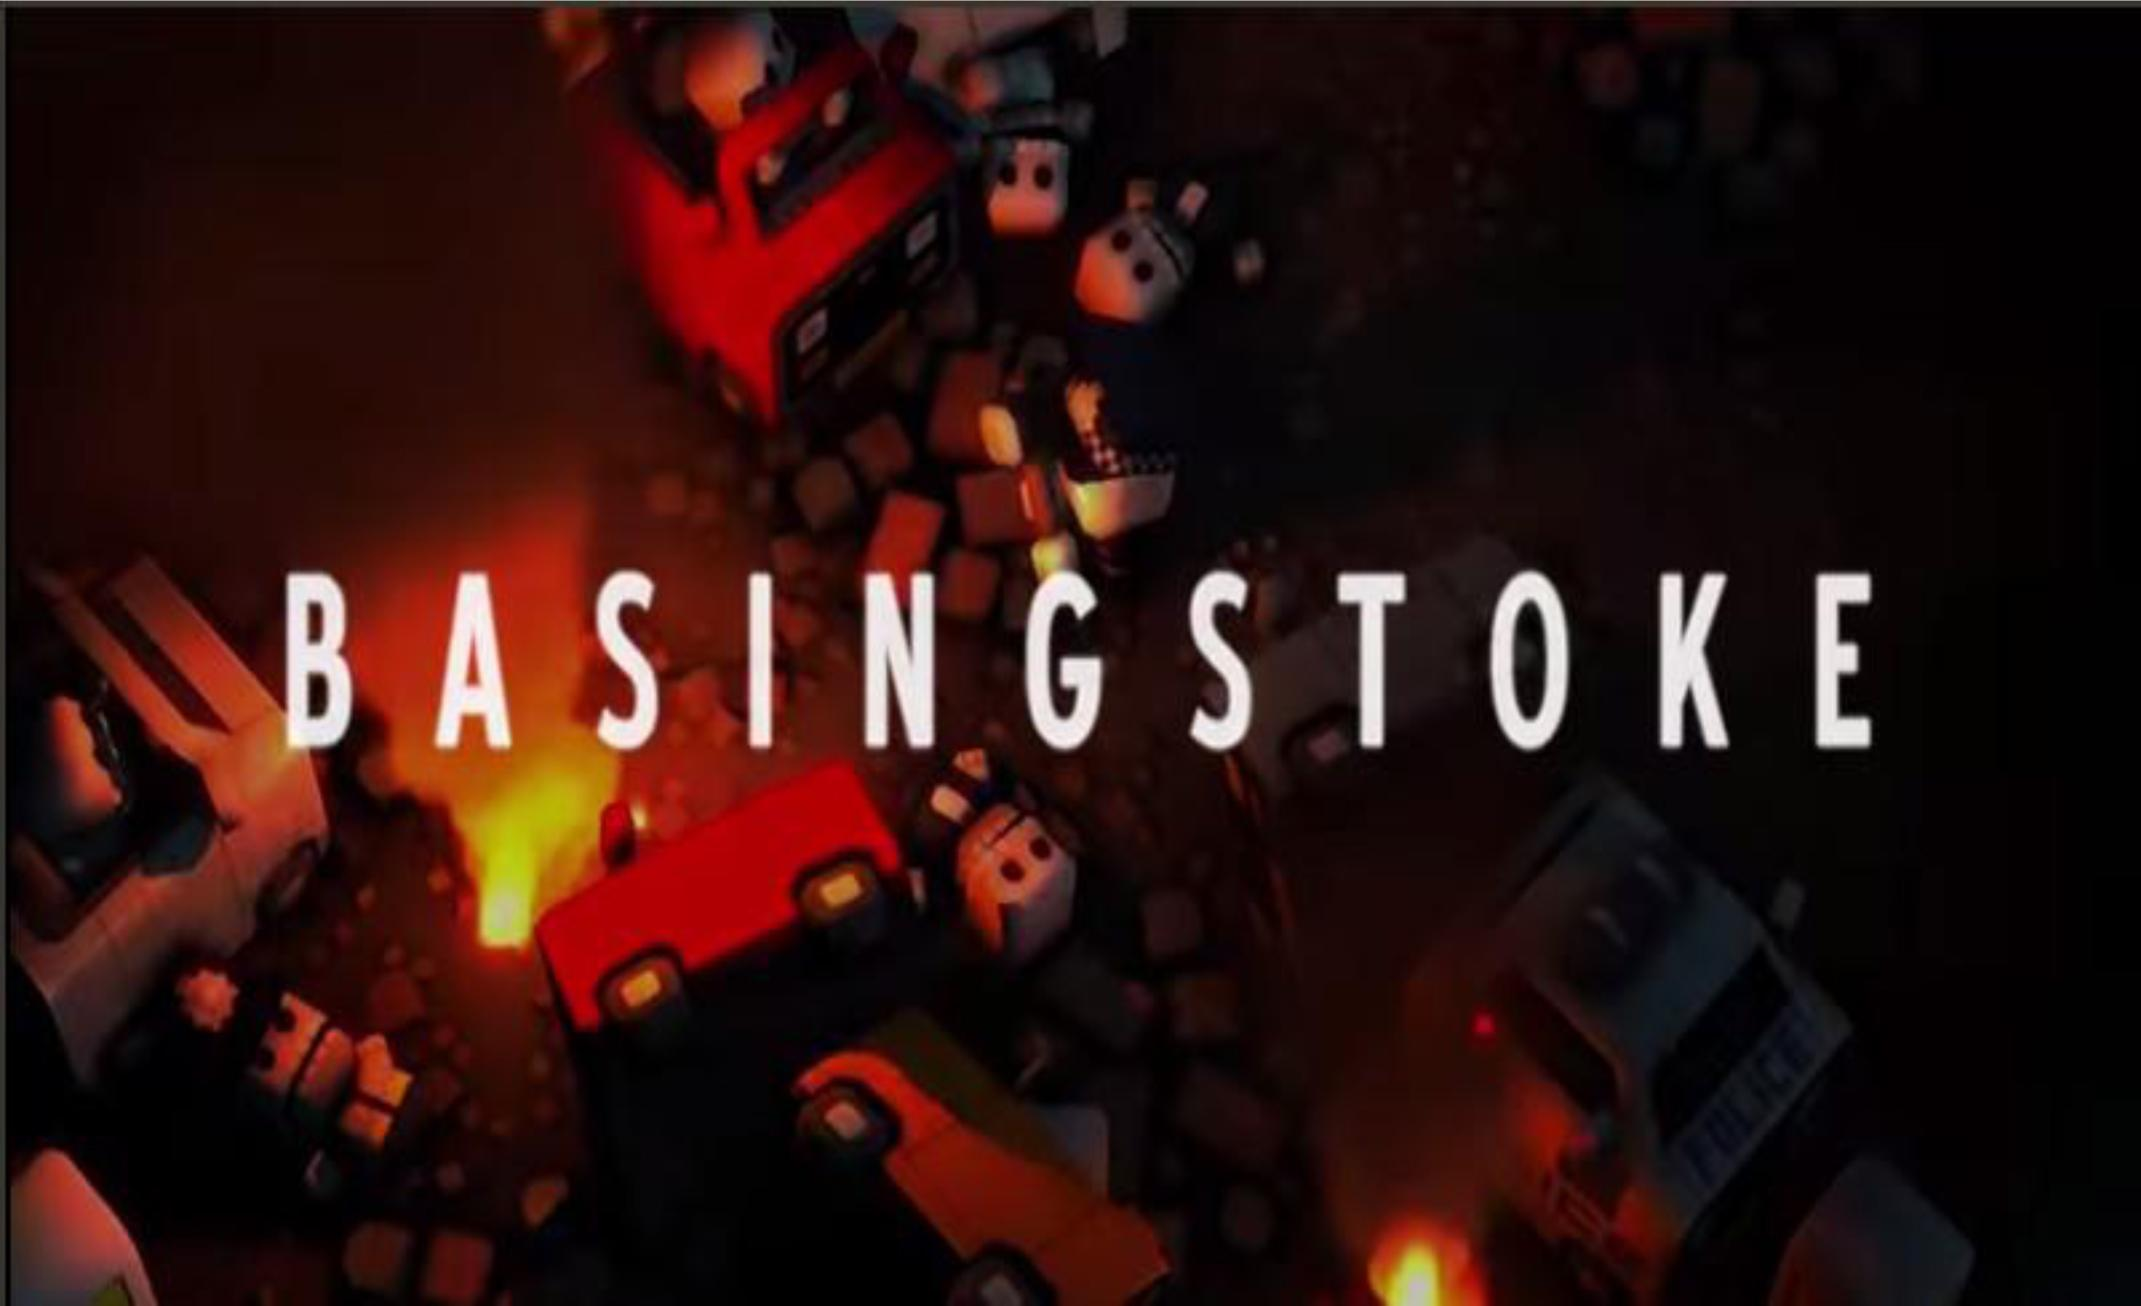 Computer game set in Basingstoke to be released next year